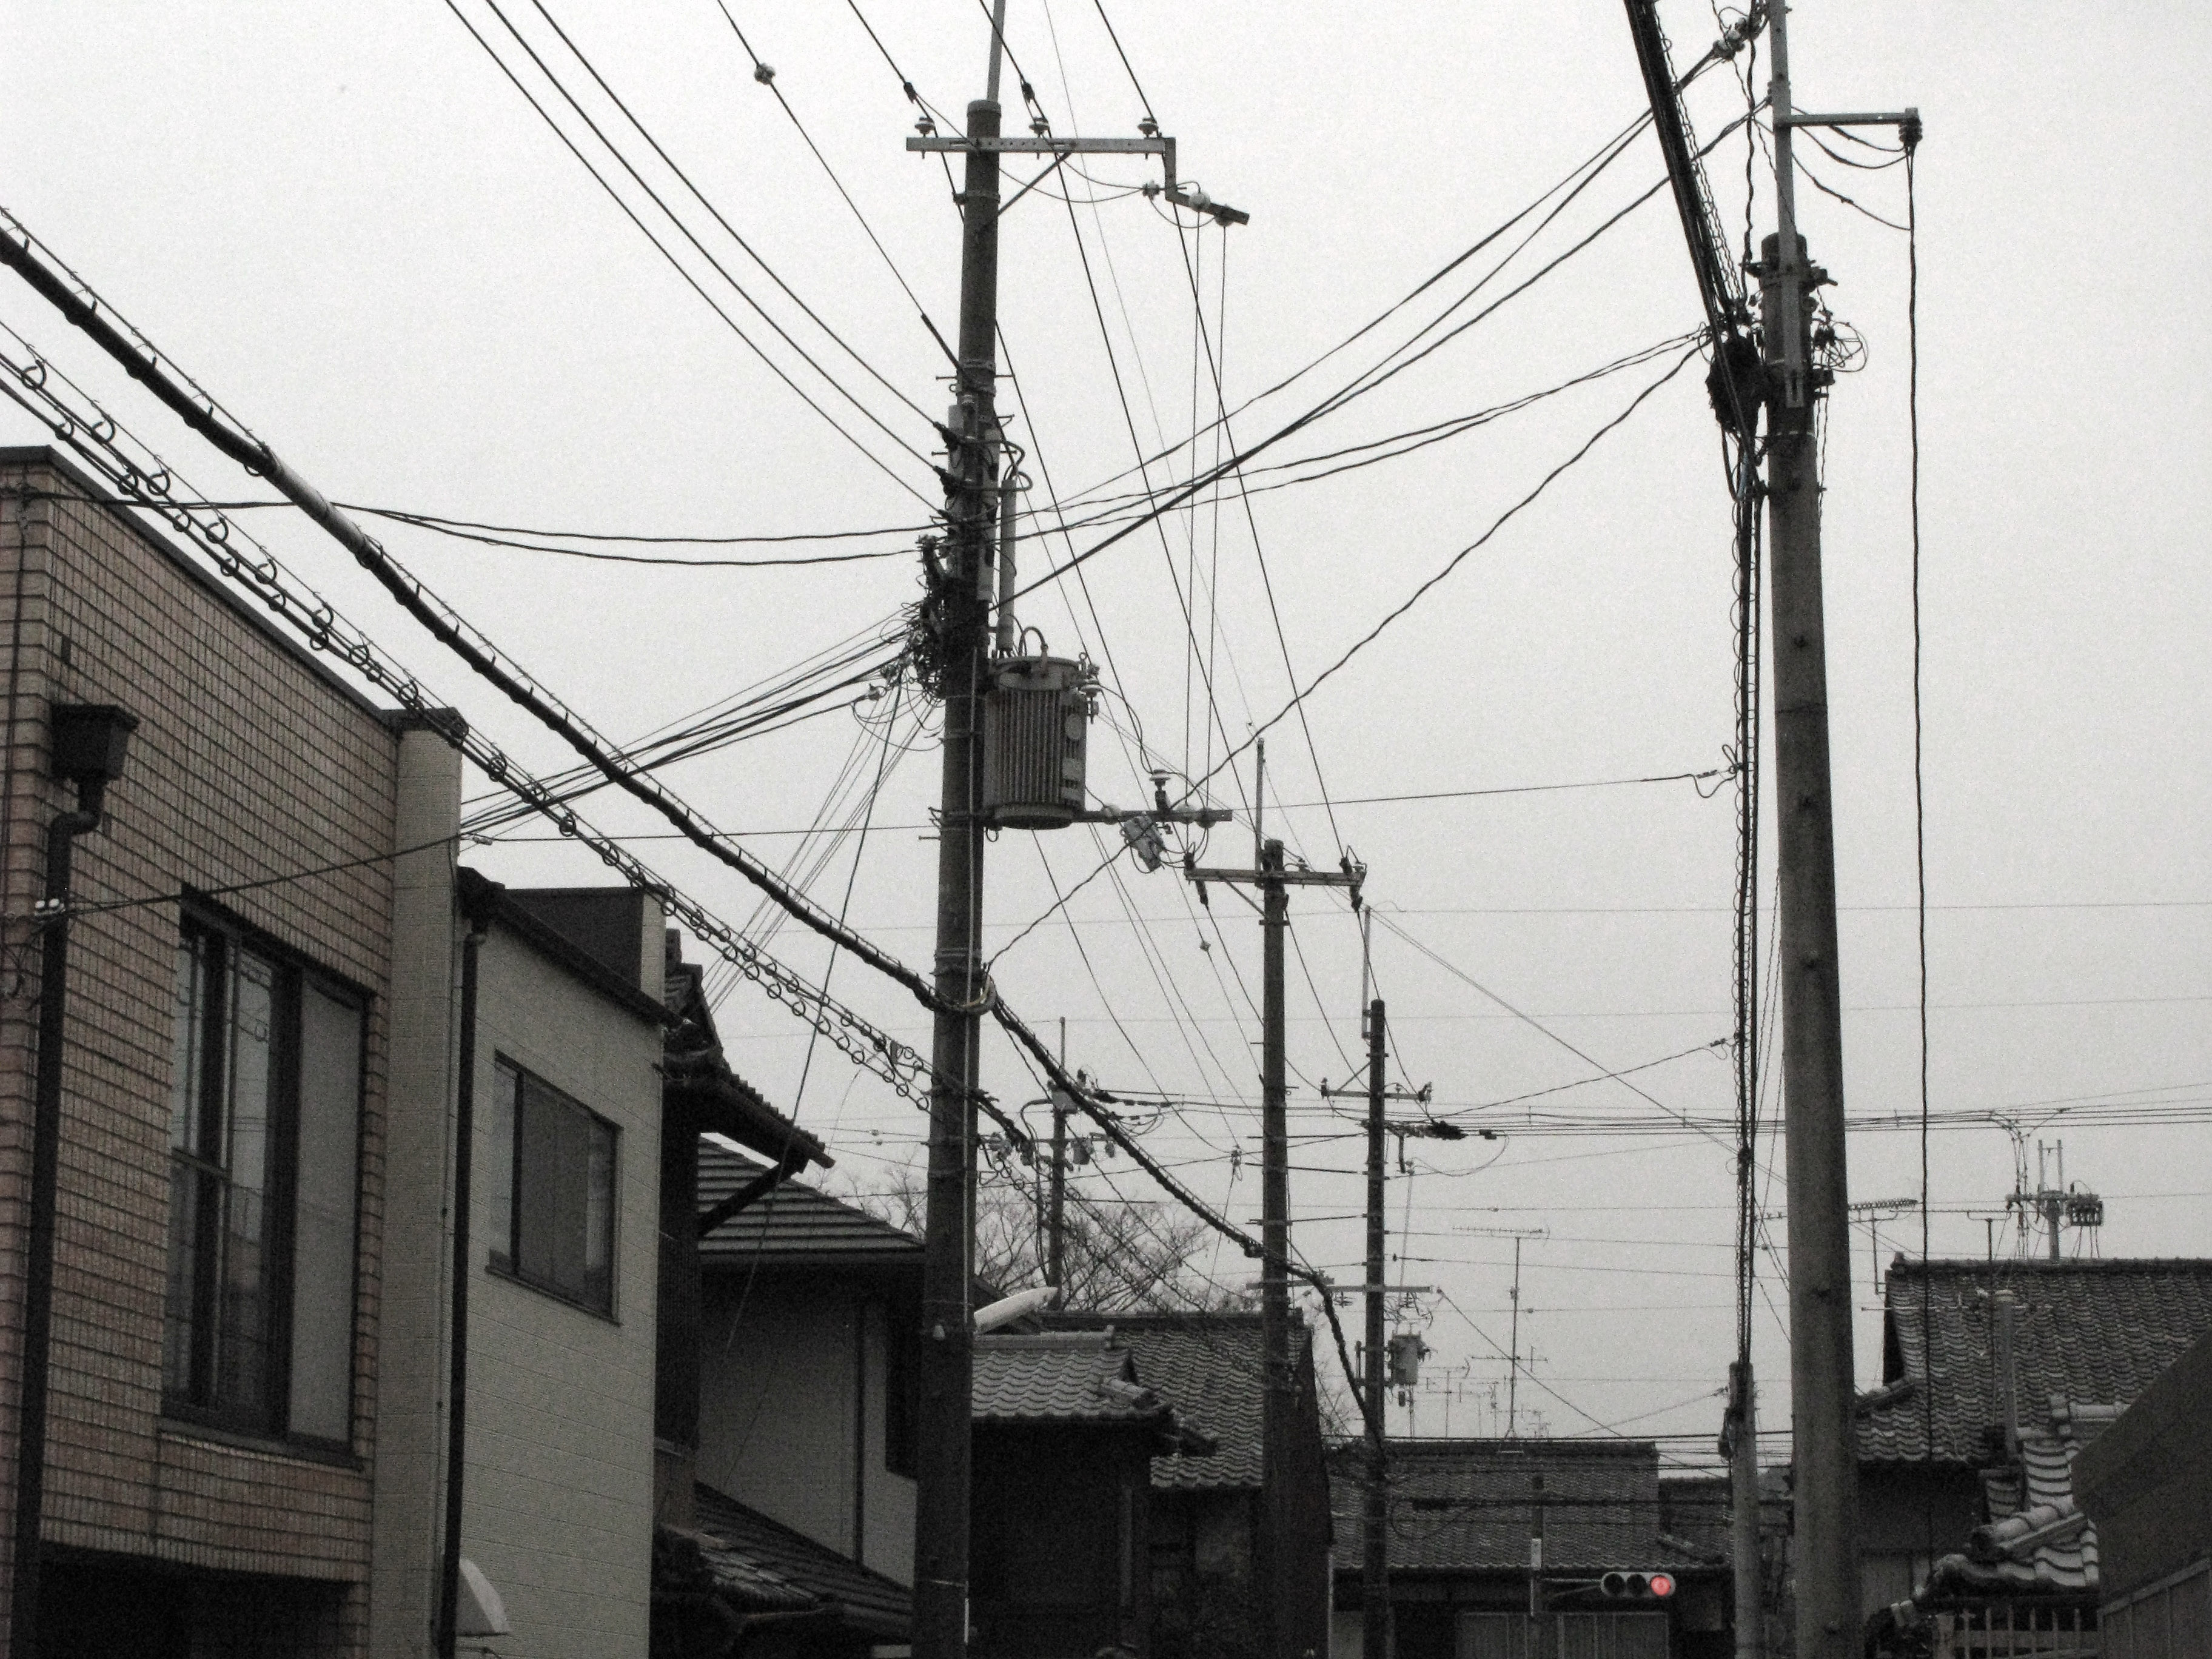 typical japanese street scene with power cables strung in all directions